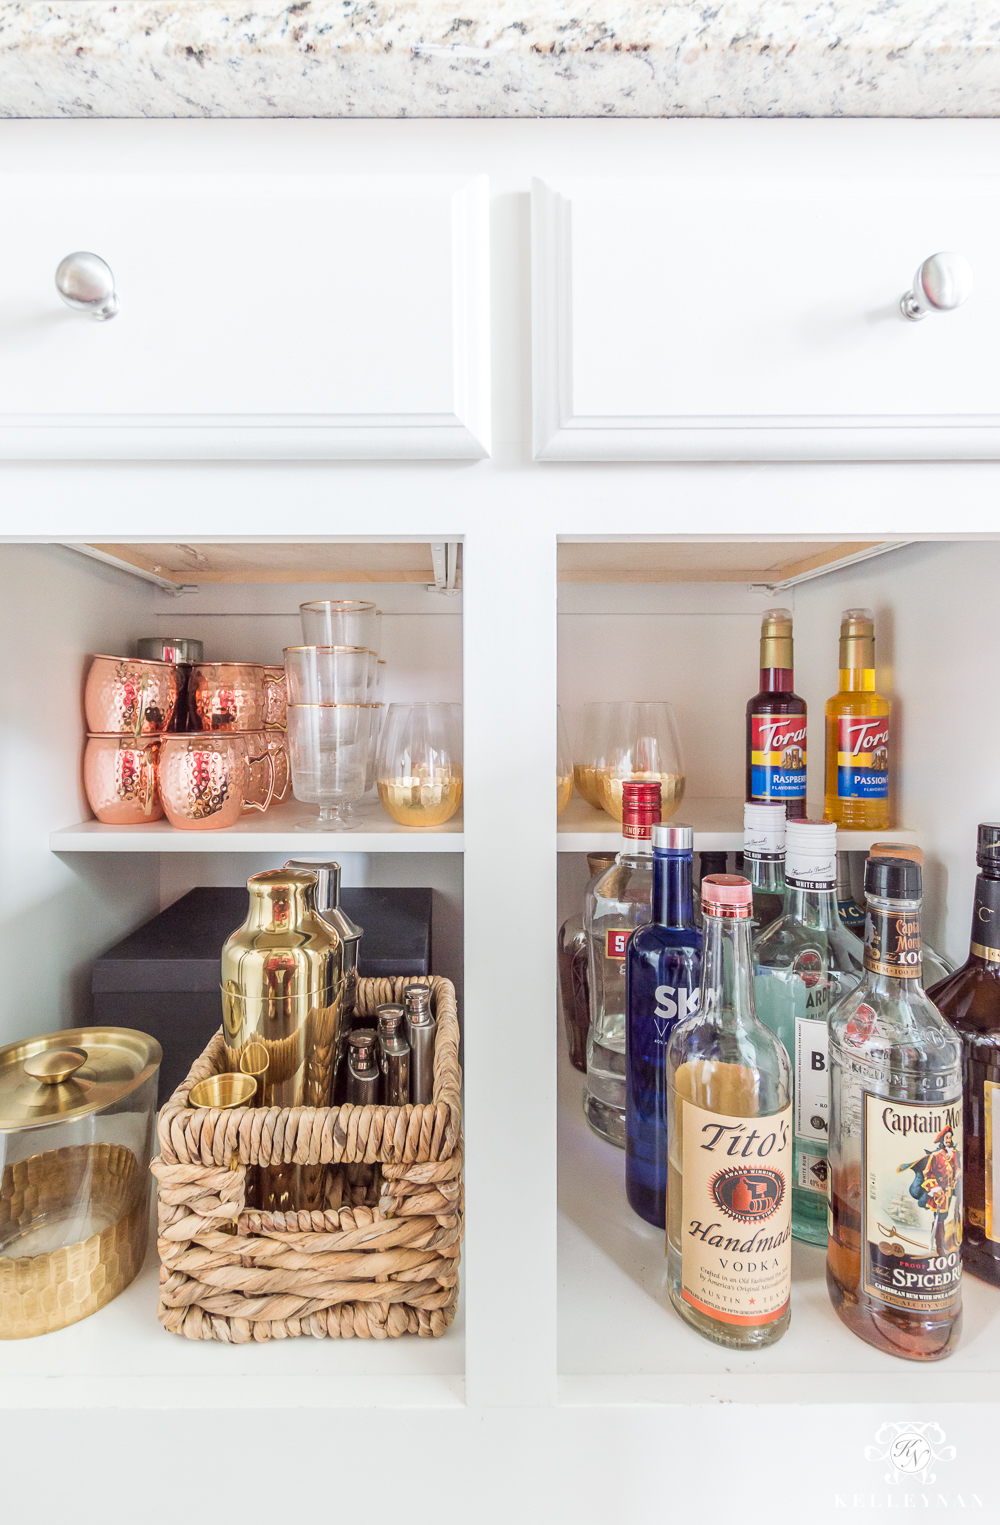 Organized Liquor Cabinet in a Small Organized Butler's Pantry